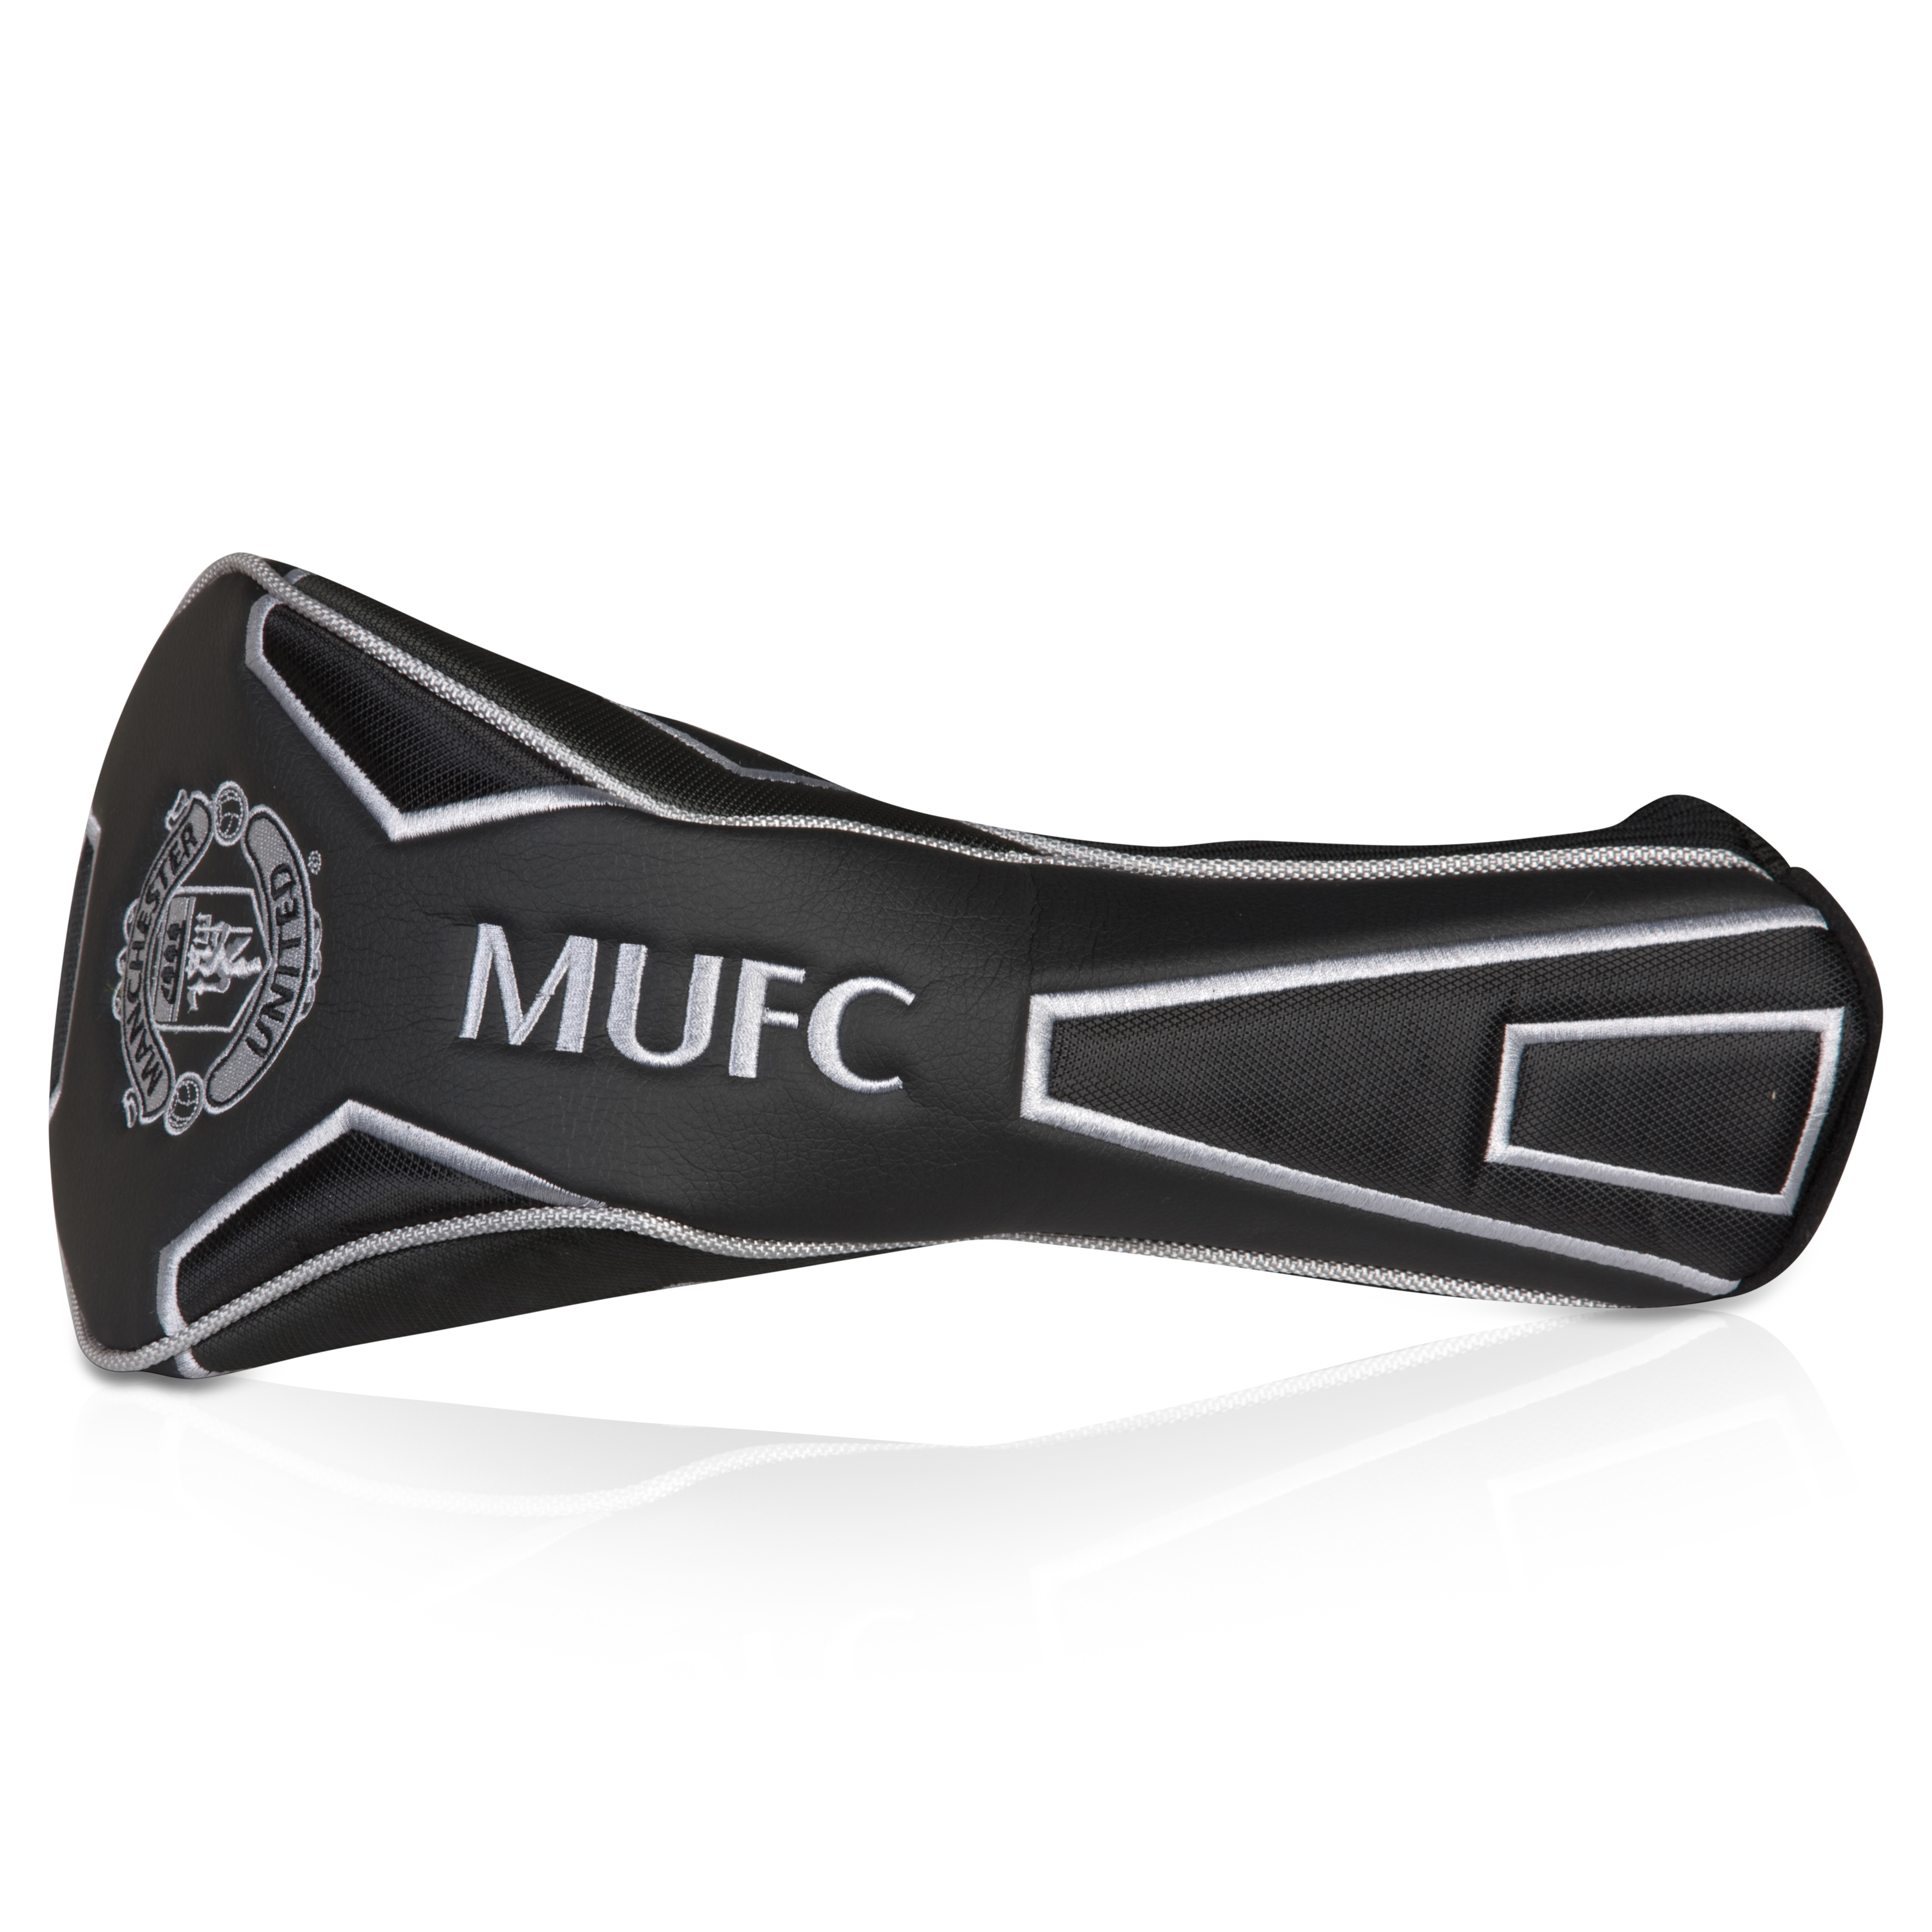 Manchester United Executive Driver Head Cover - Black/Silver